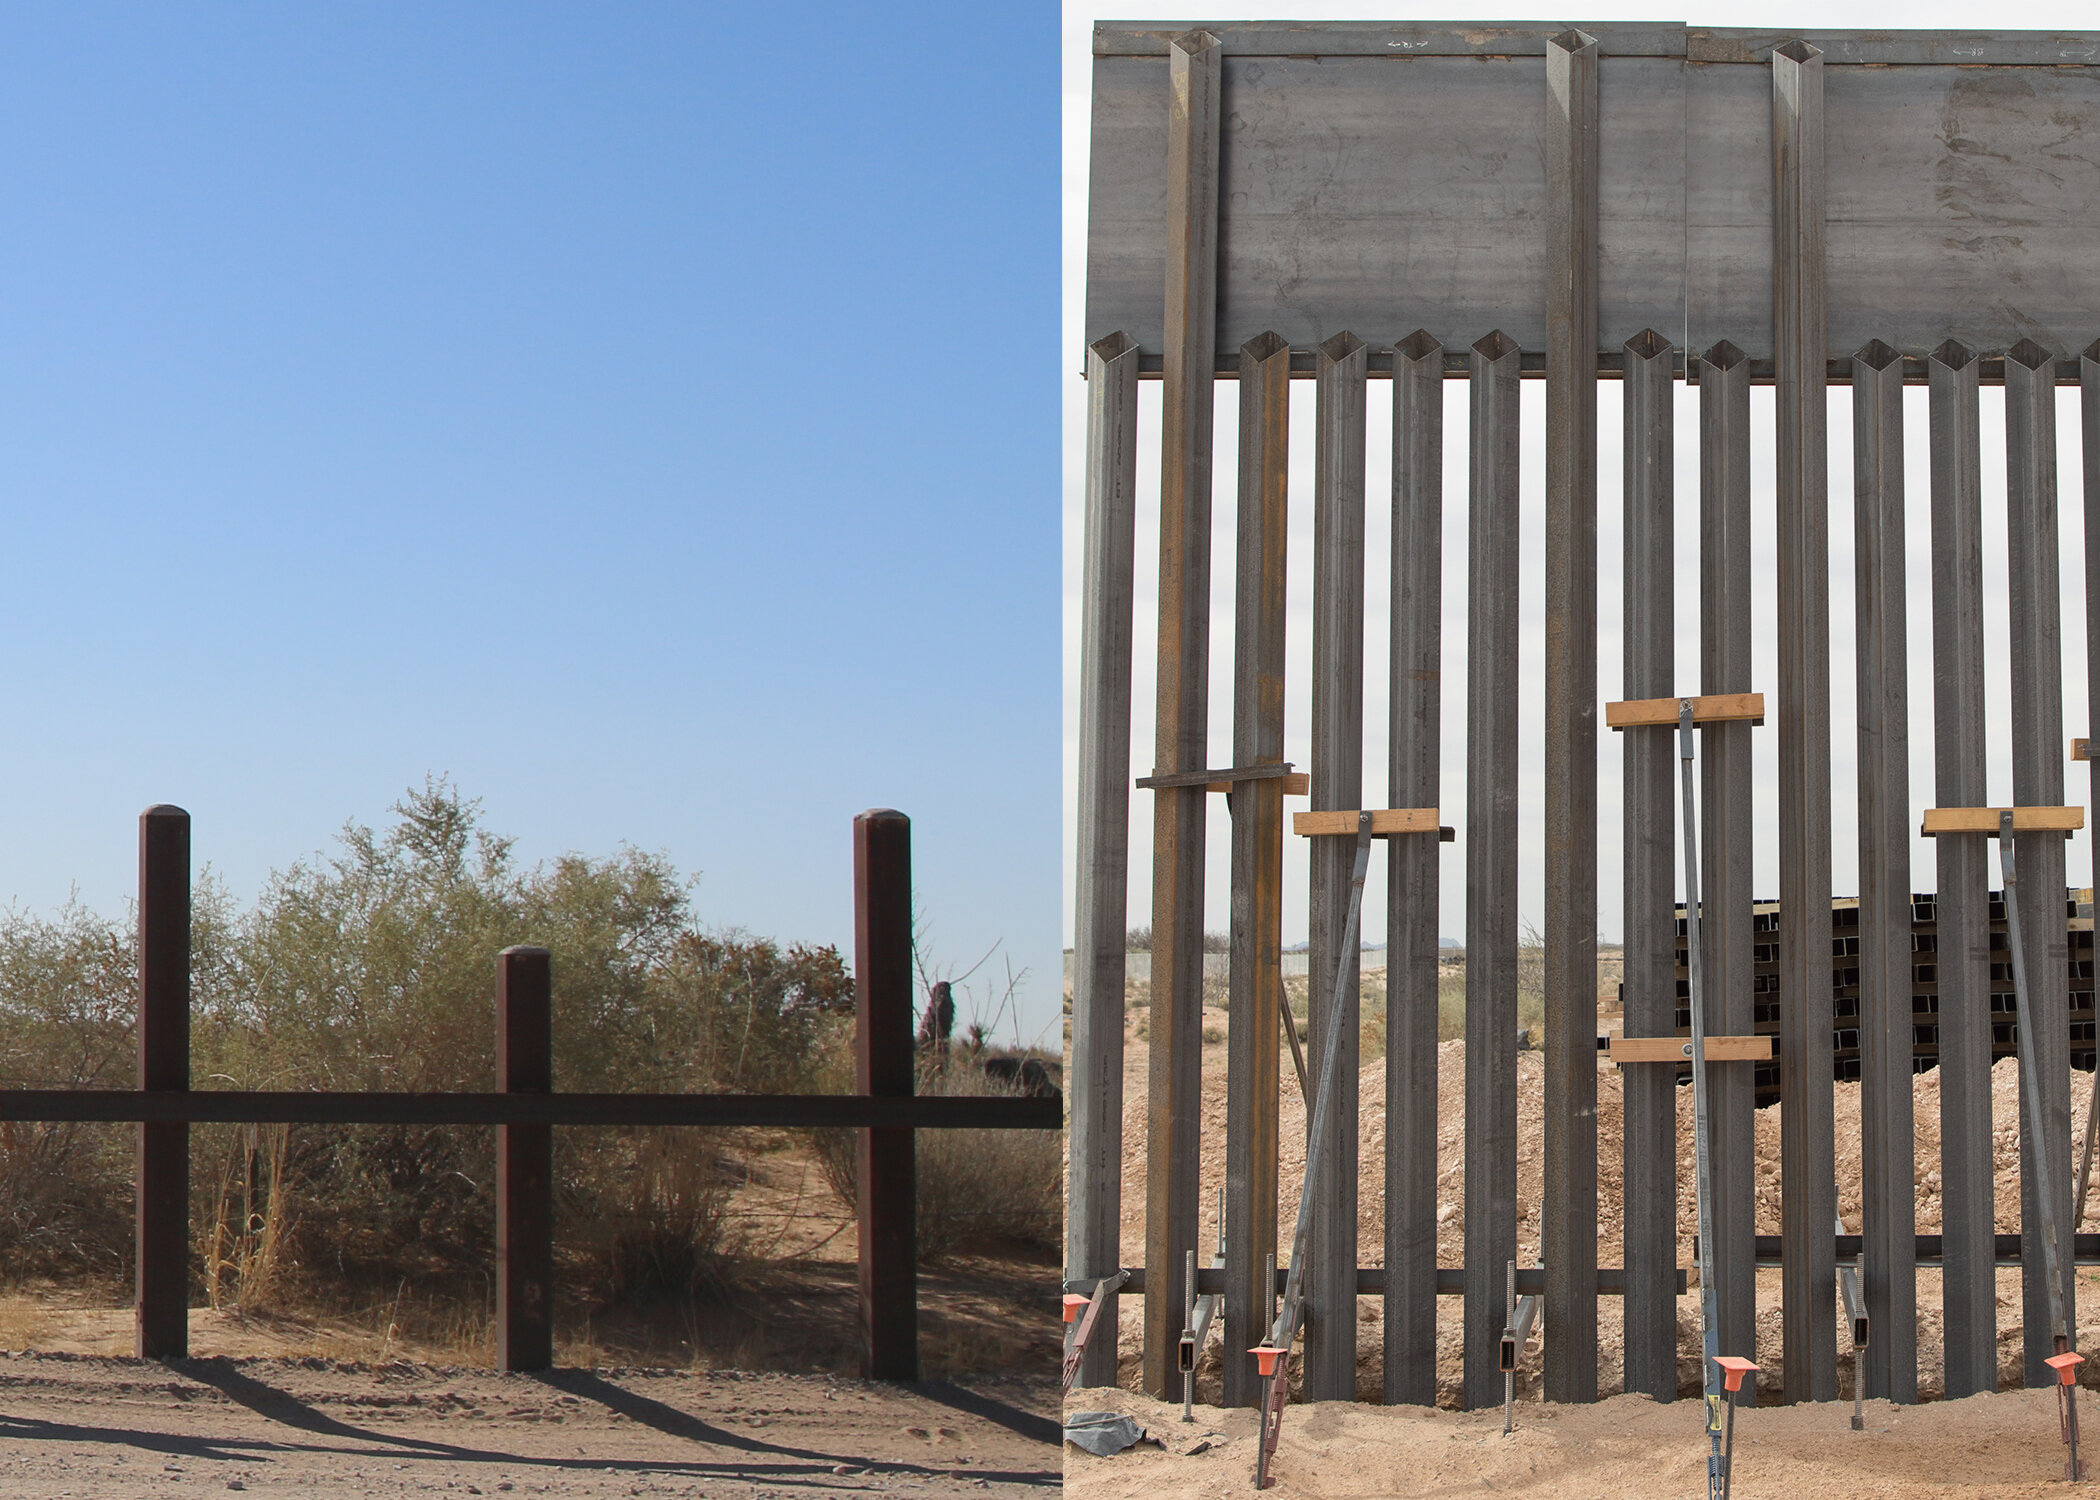 construction-staging-area-for-the-santa-teresa-border-wall-replacement-project_39528548680_o.jpg